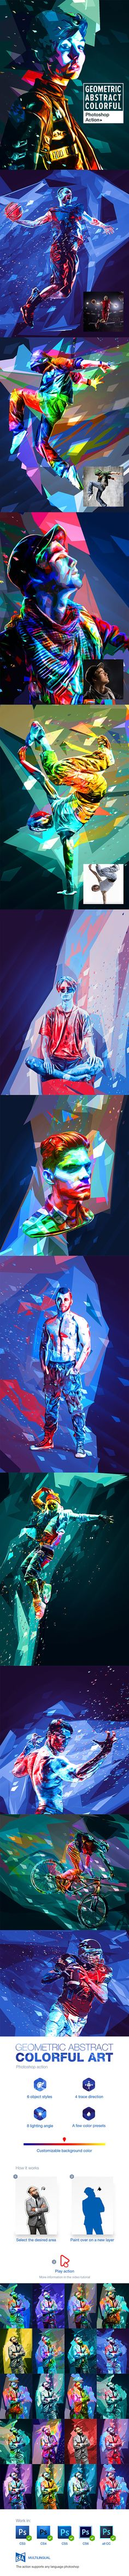 Geometric Abstract Colorful Art Photoshop Action #low poly #colorful • Download ➝ https://graphicriver.net/item/geometric-abstract-colorful-art-photoshop-action/19618360?ref=pxcr